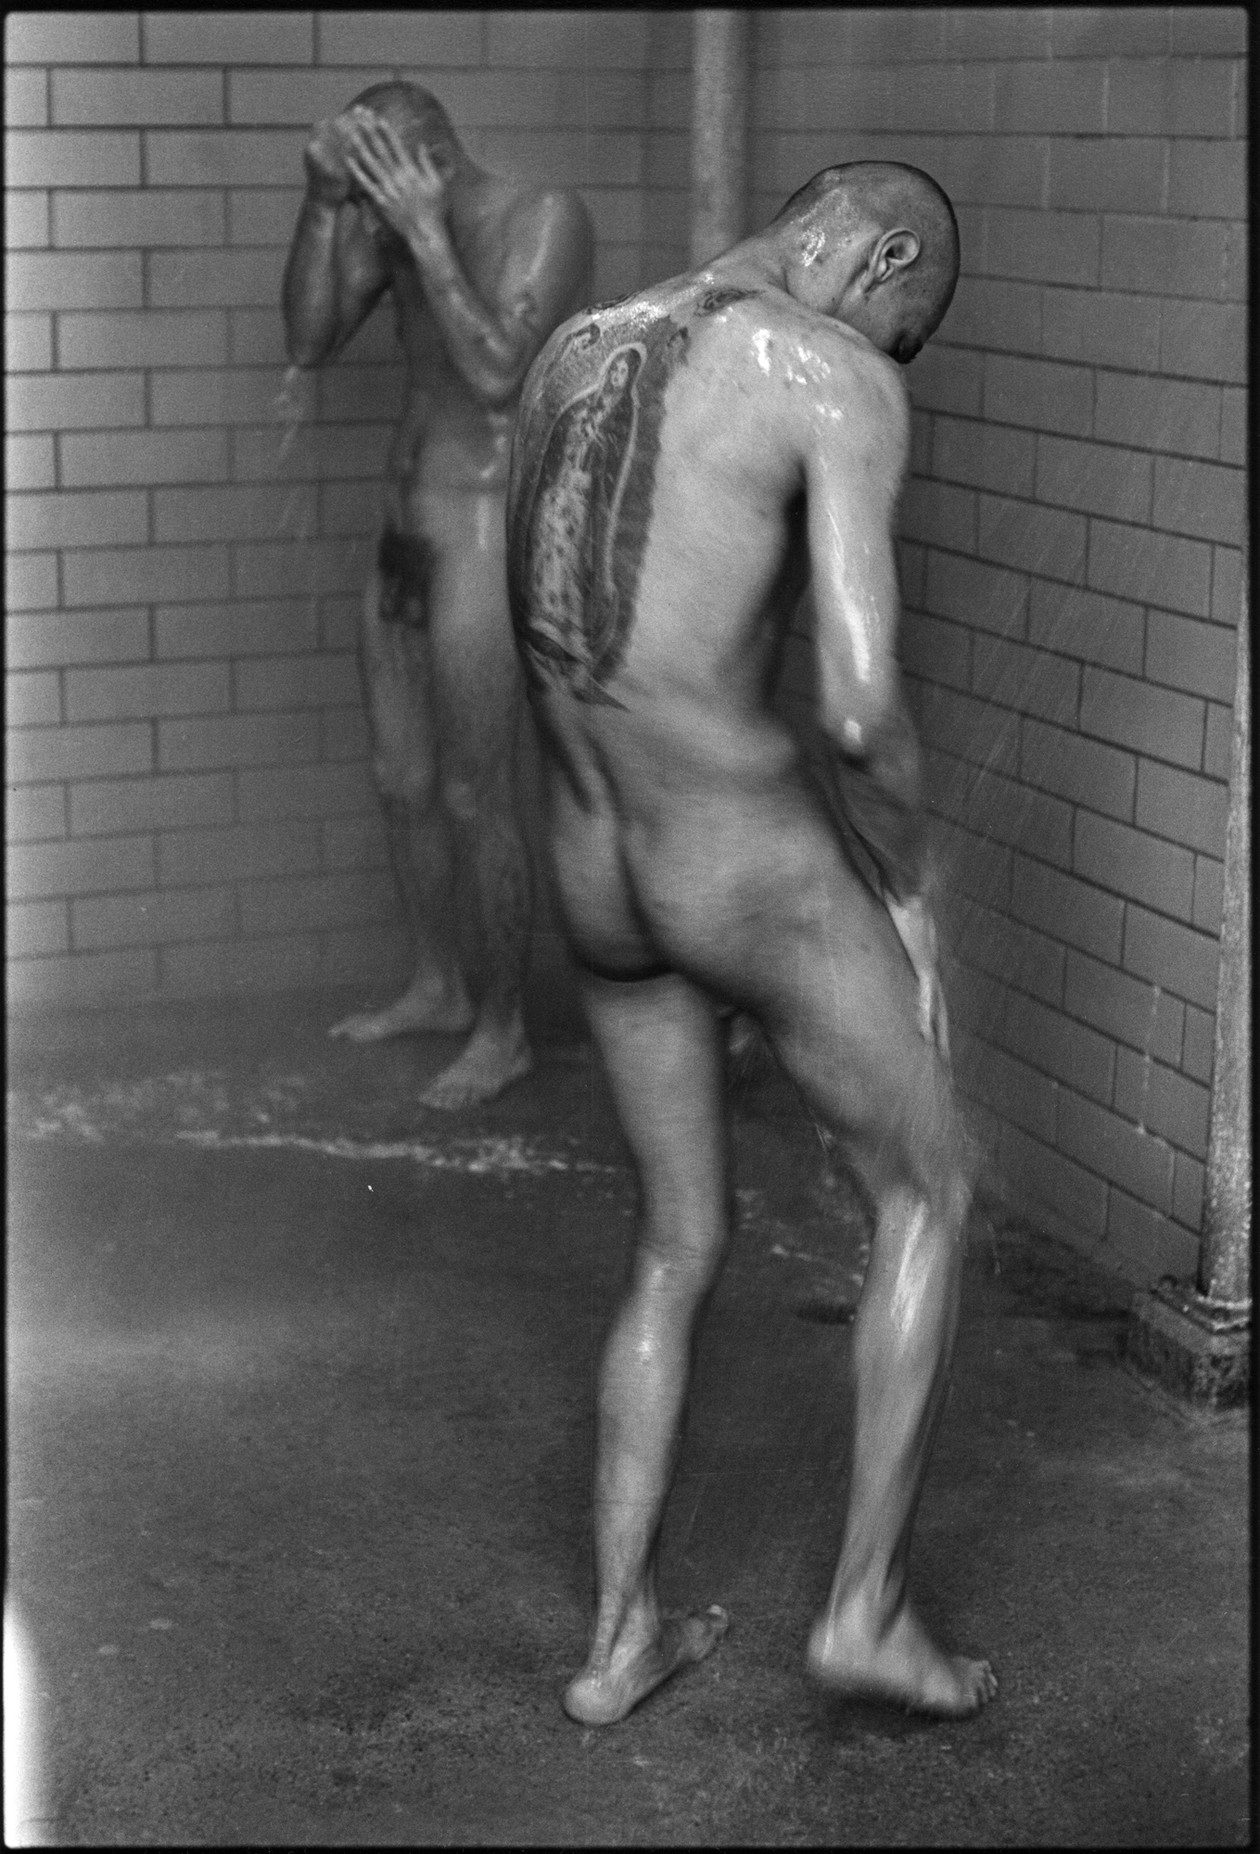 Showers (1967-1968) by Danny Lyon